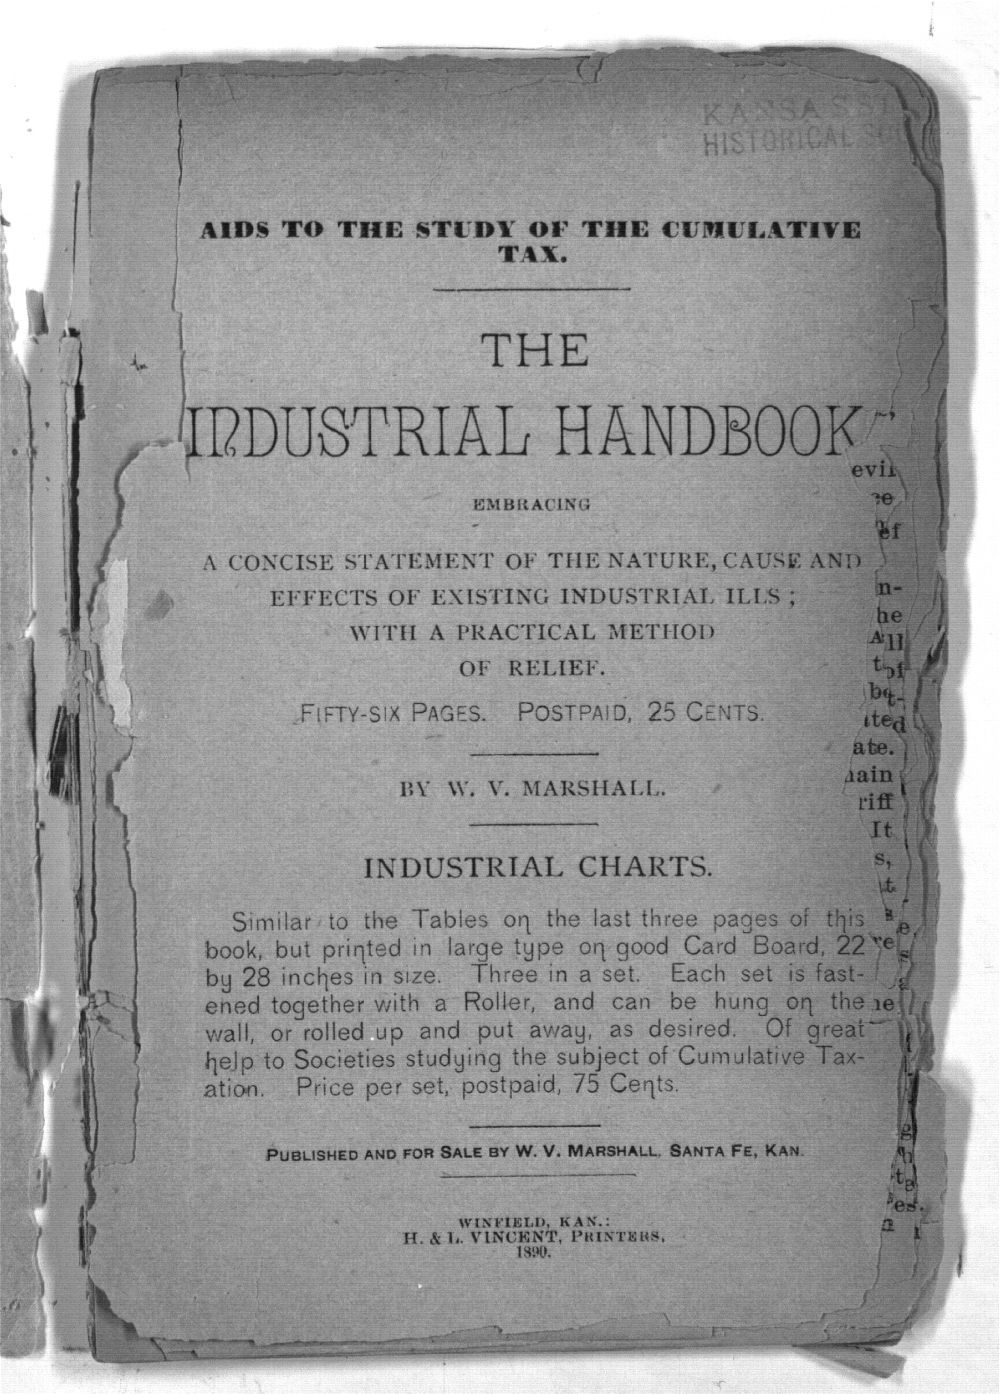 The Industrial Handbook Embracing A Concise Statement  Of The Nature, Cause And Effects Of Existing Industrial Ills:  With A Practical Method of Relief - 3